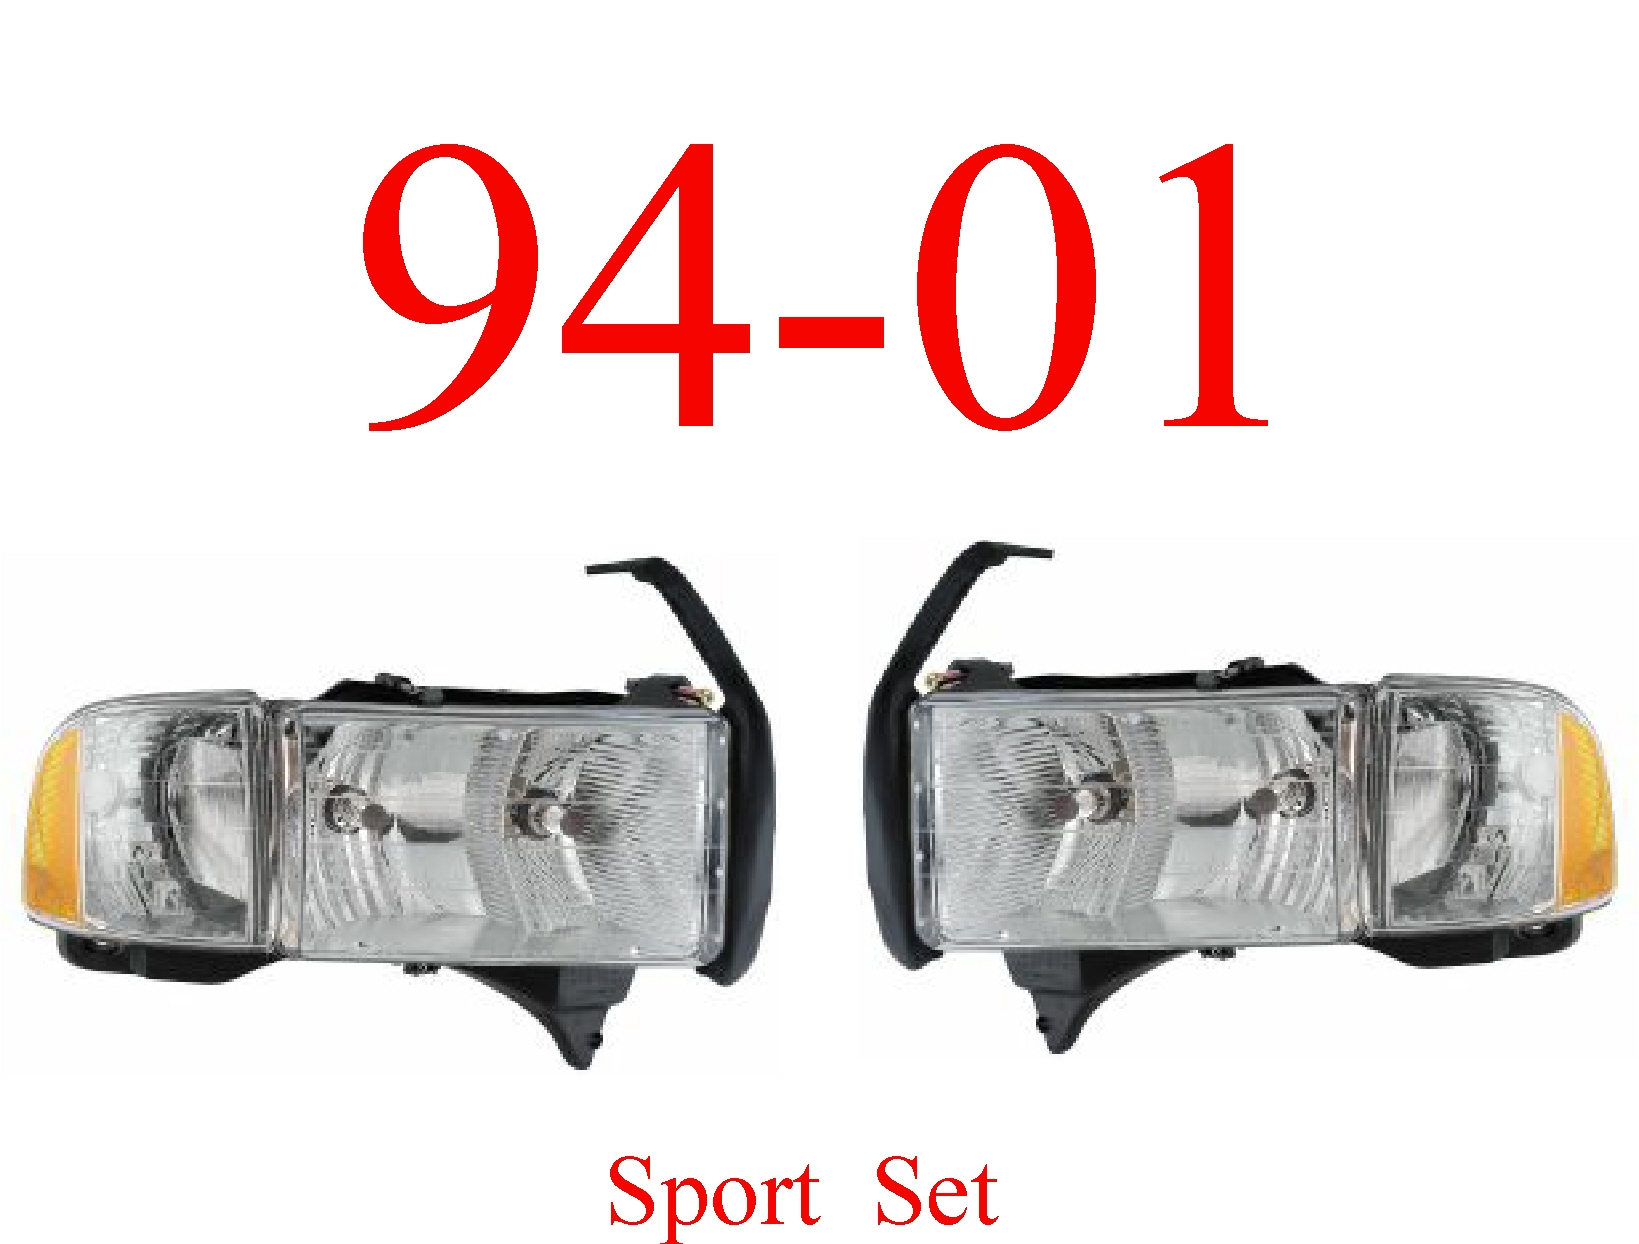 94-01 Dodge Sport Head Light Set